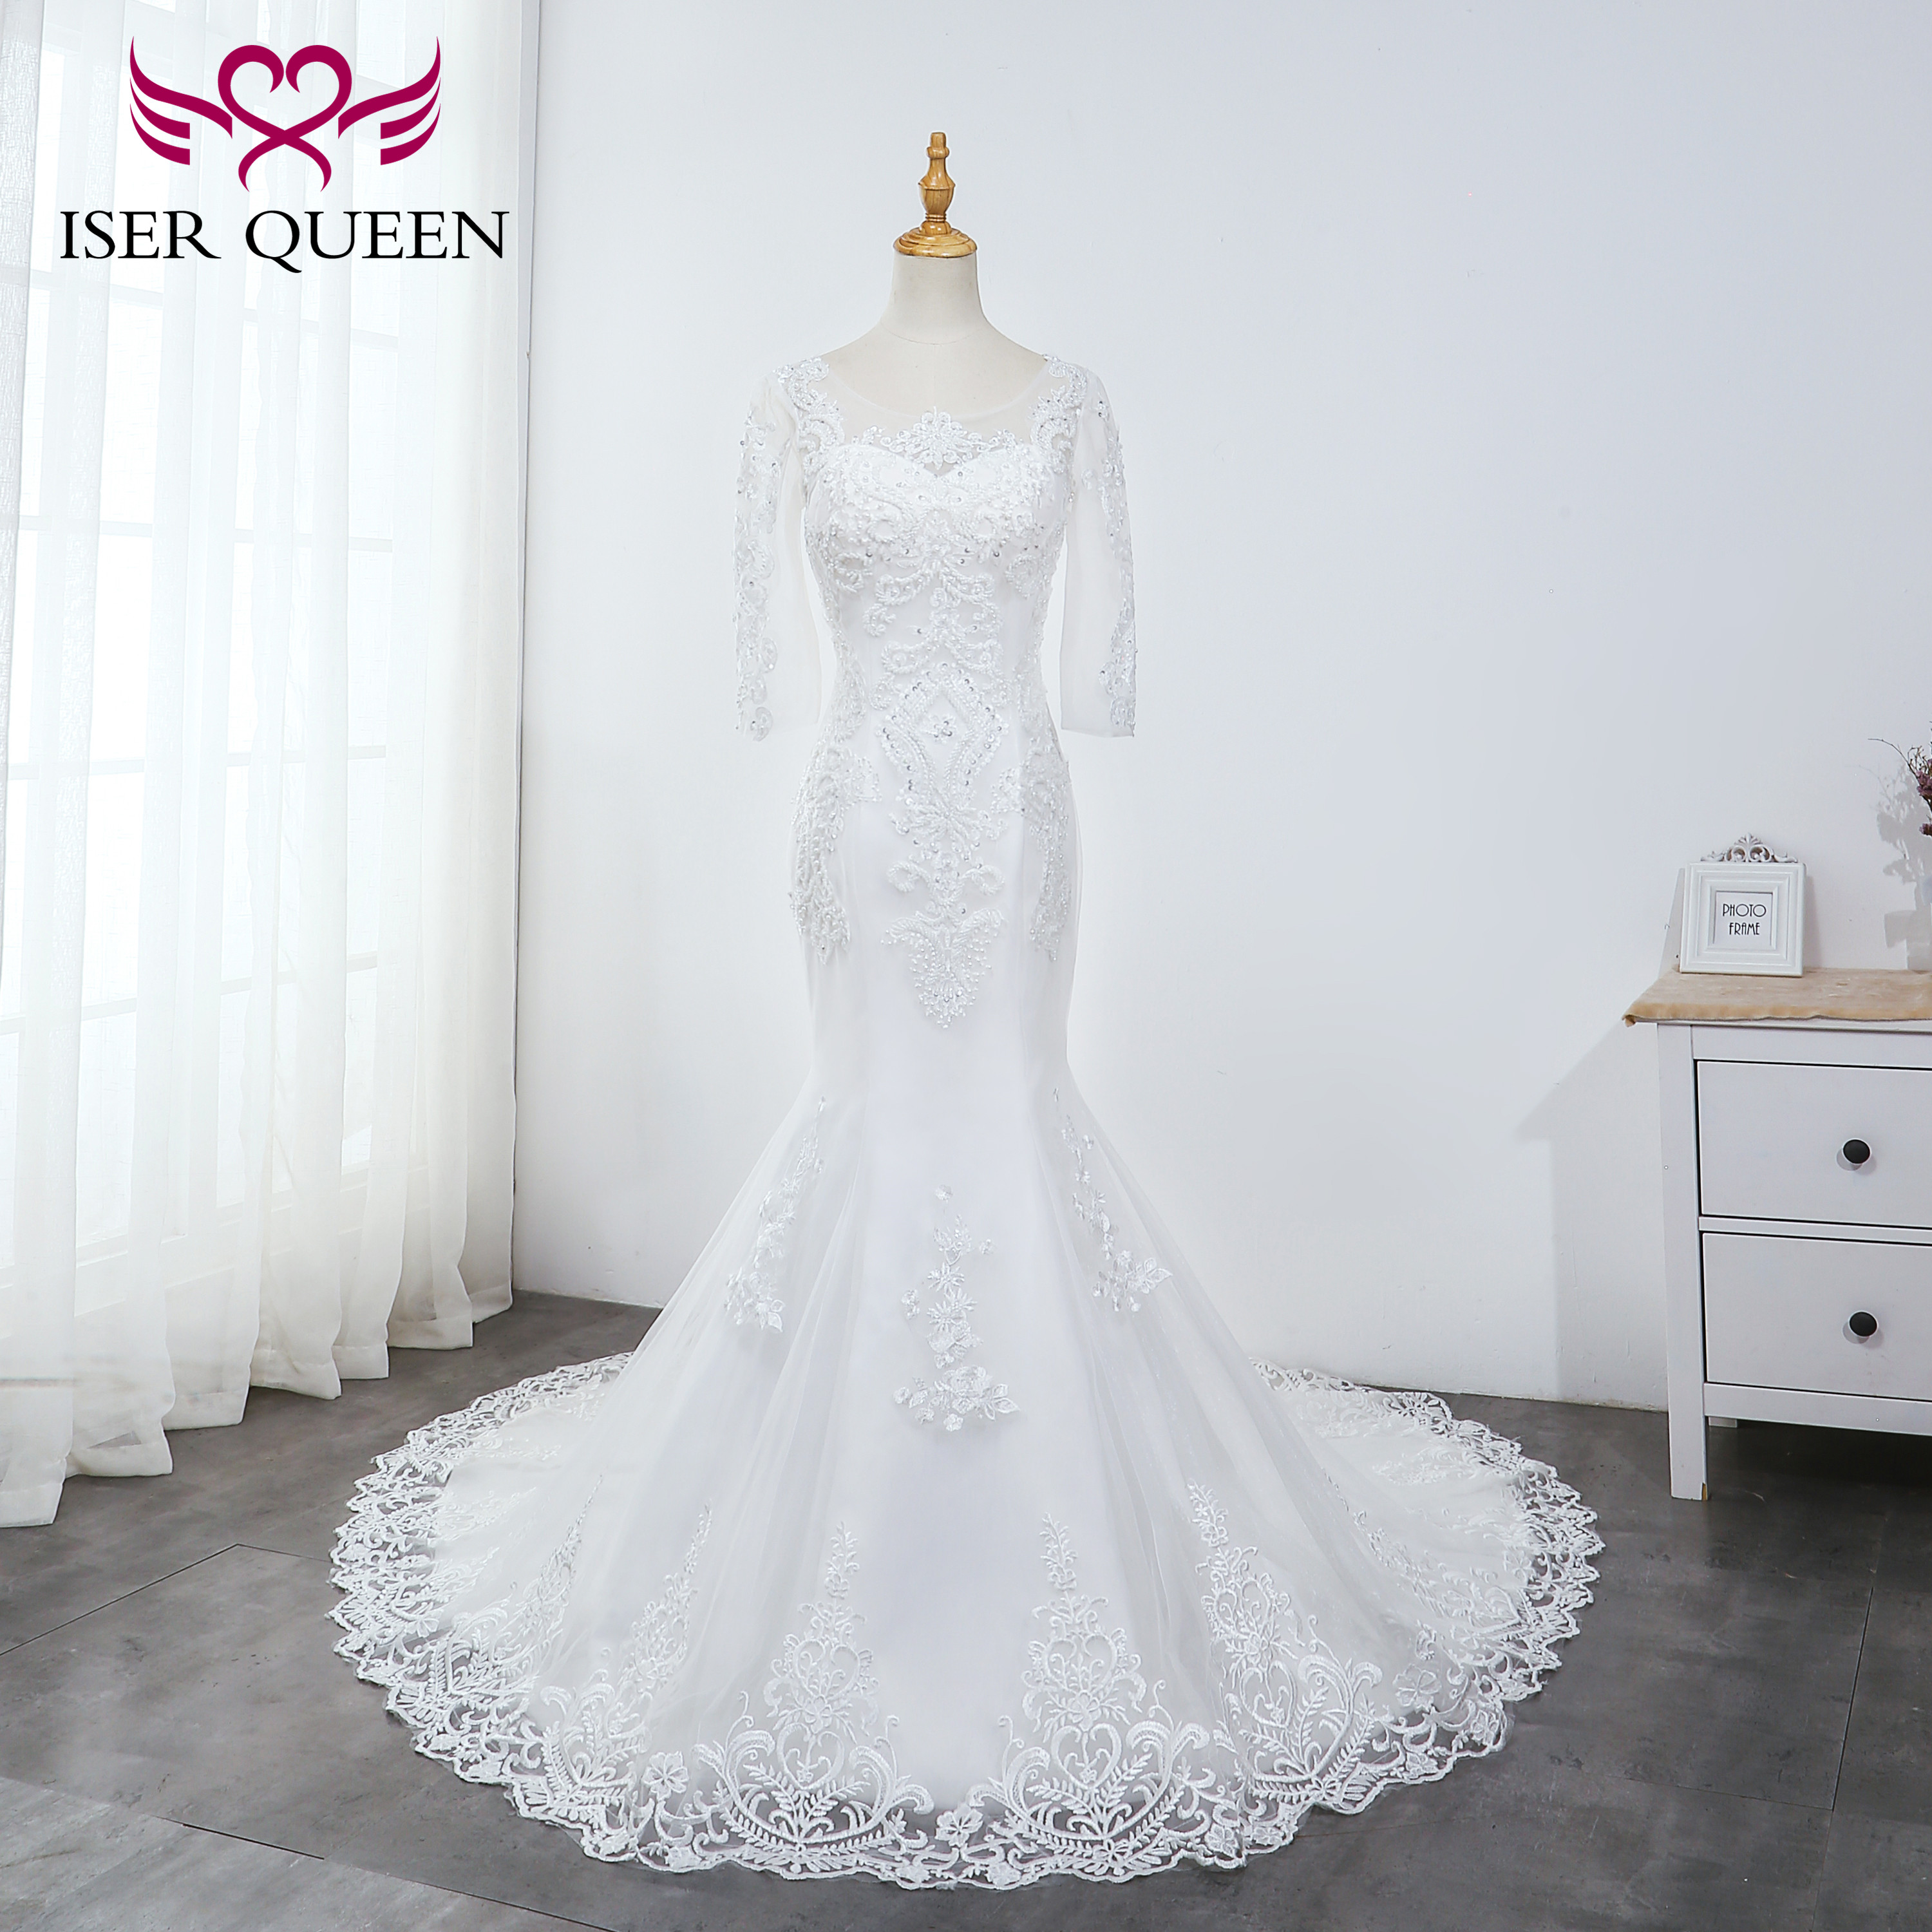 Tulle Three Quarter Sleeves Pearls Beading Wedding Gown 2019 Embroidered Lace Mermaid Wedding Dresses Elegant Pure White WX0039